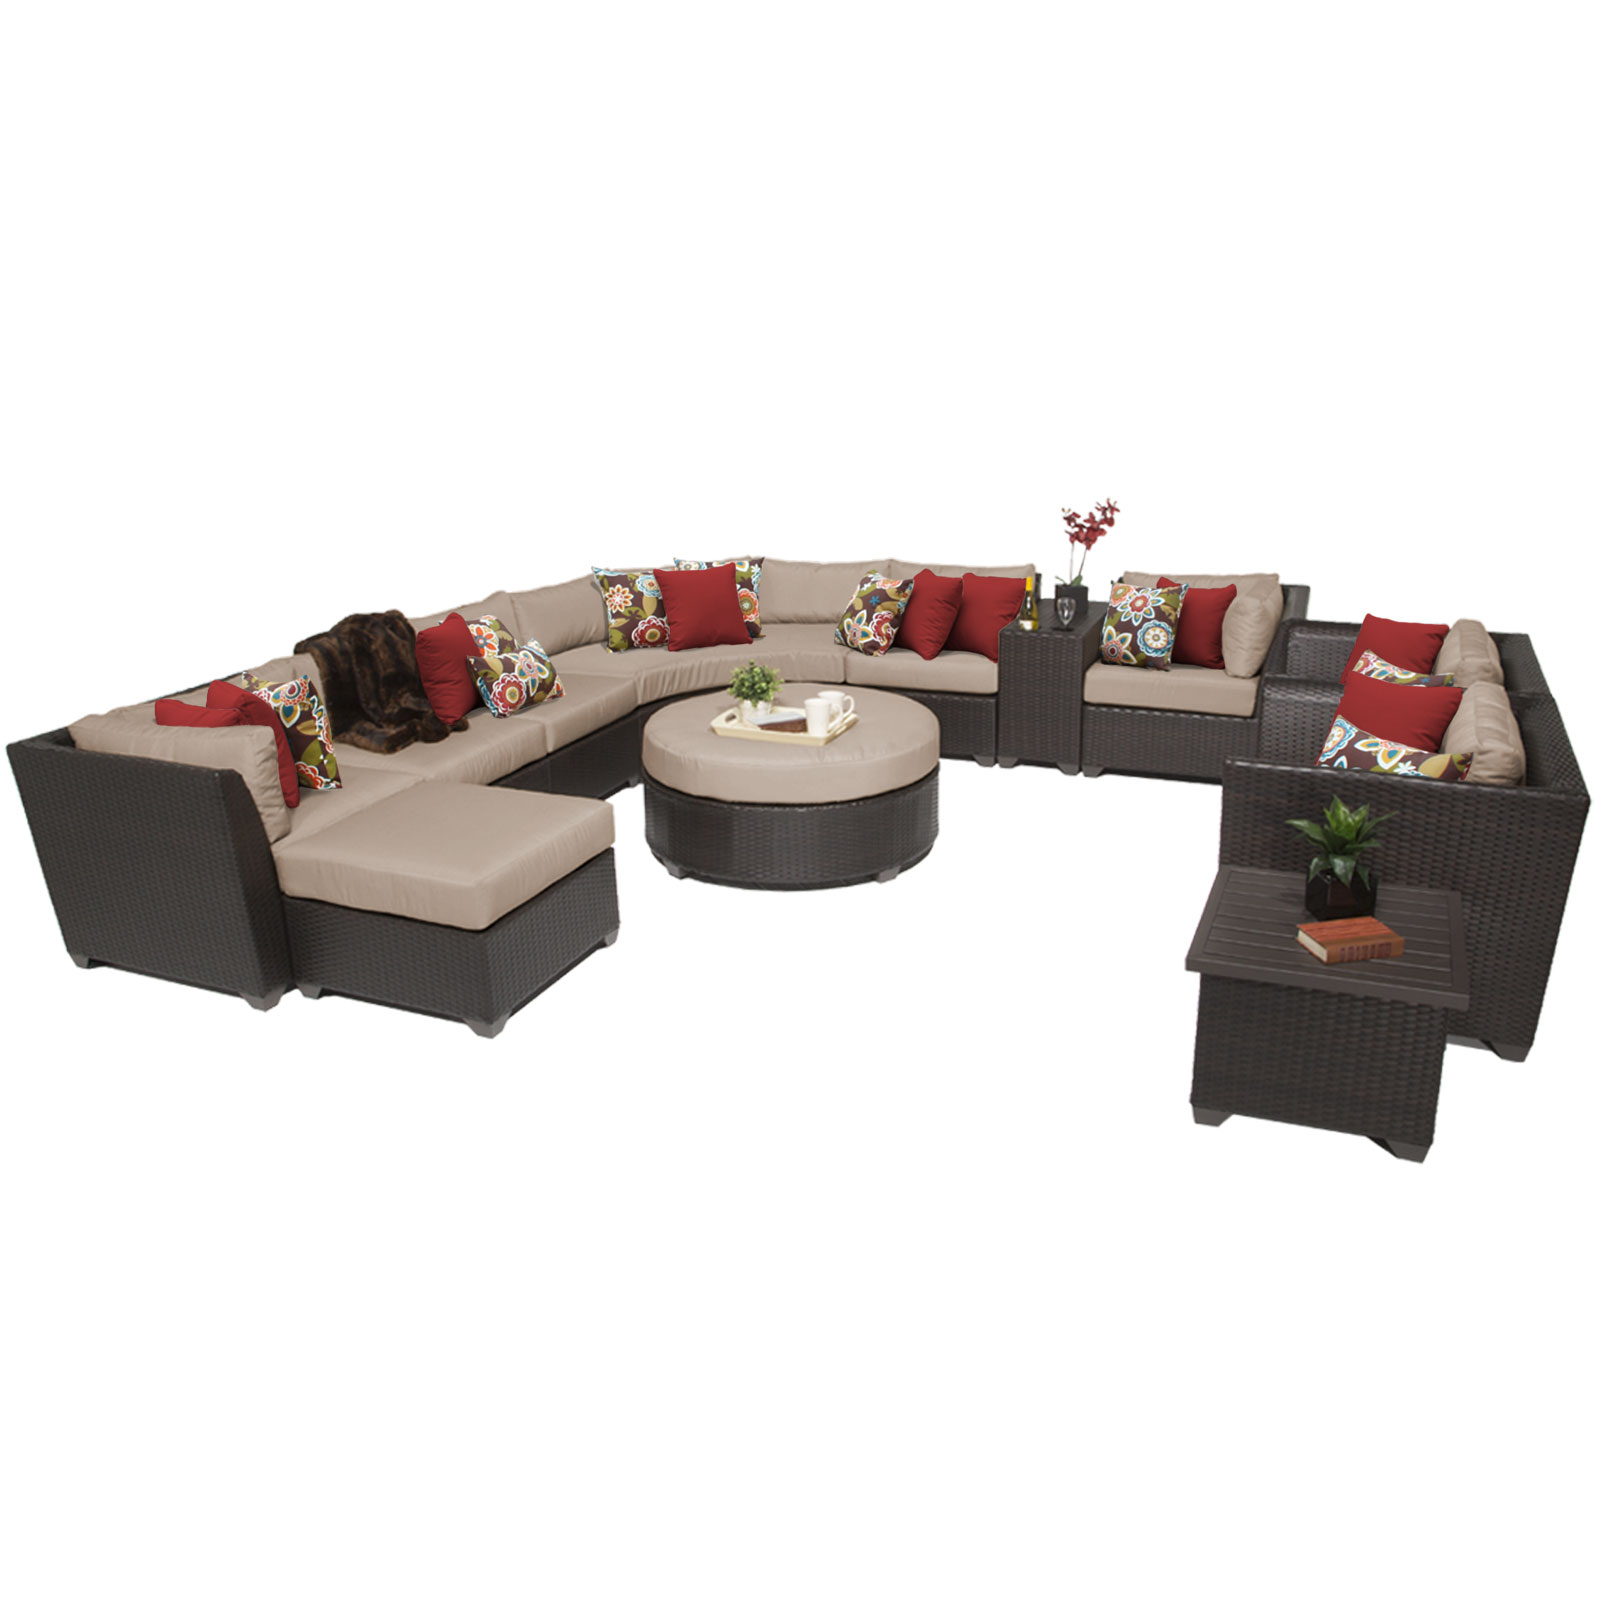 Bermuda 12 Piece Outdoor Wicker Patio Furniture Set 12a